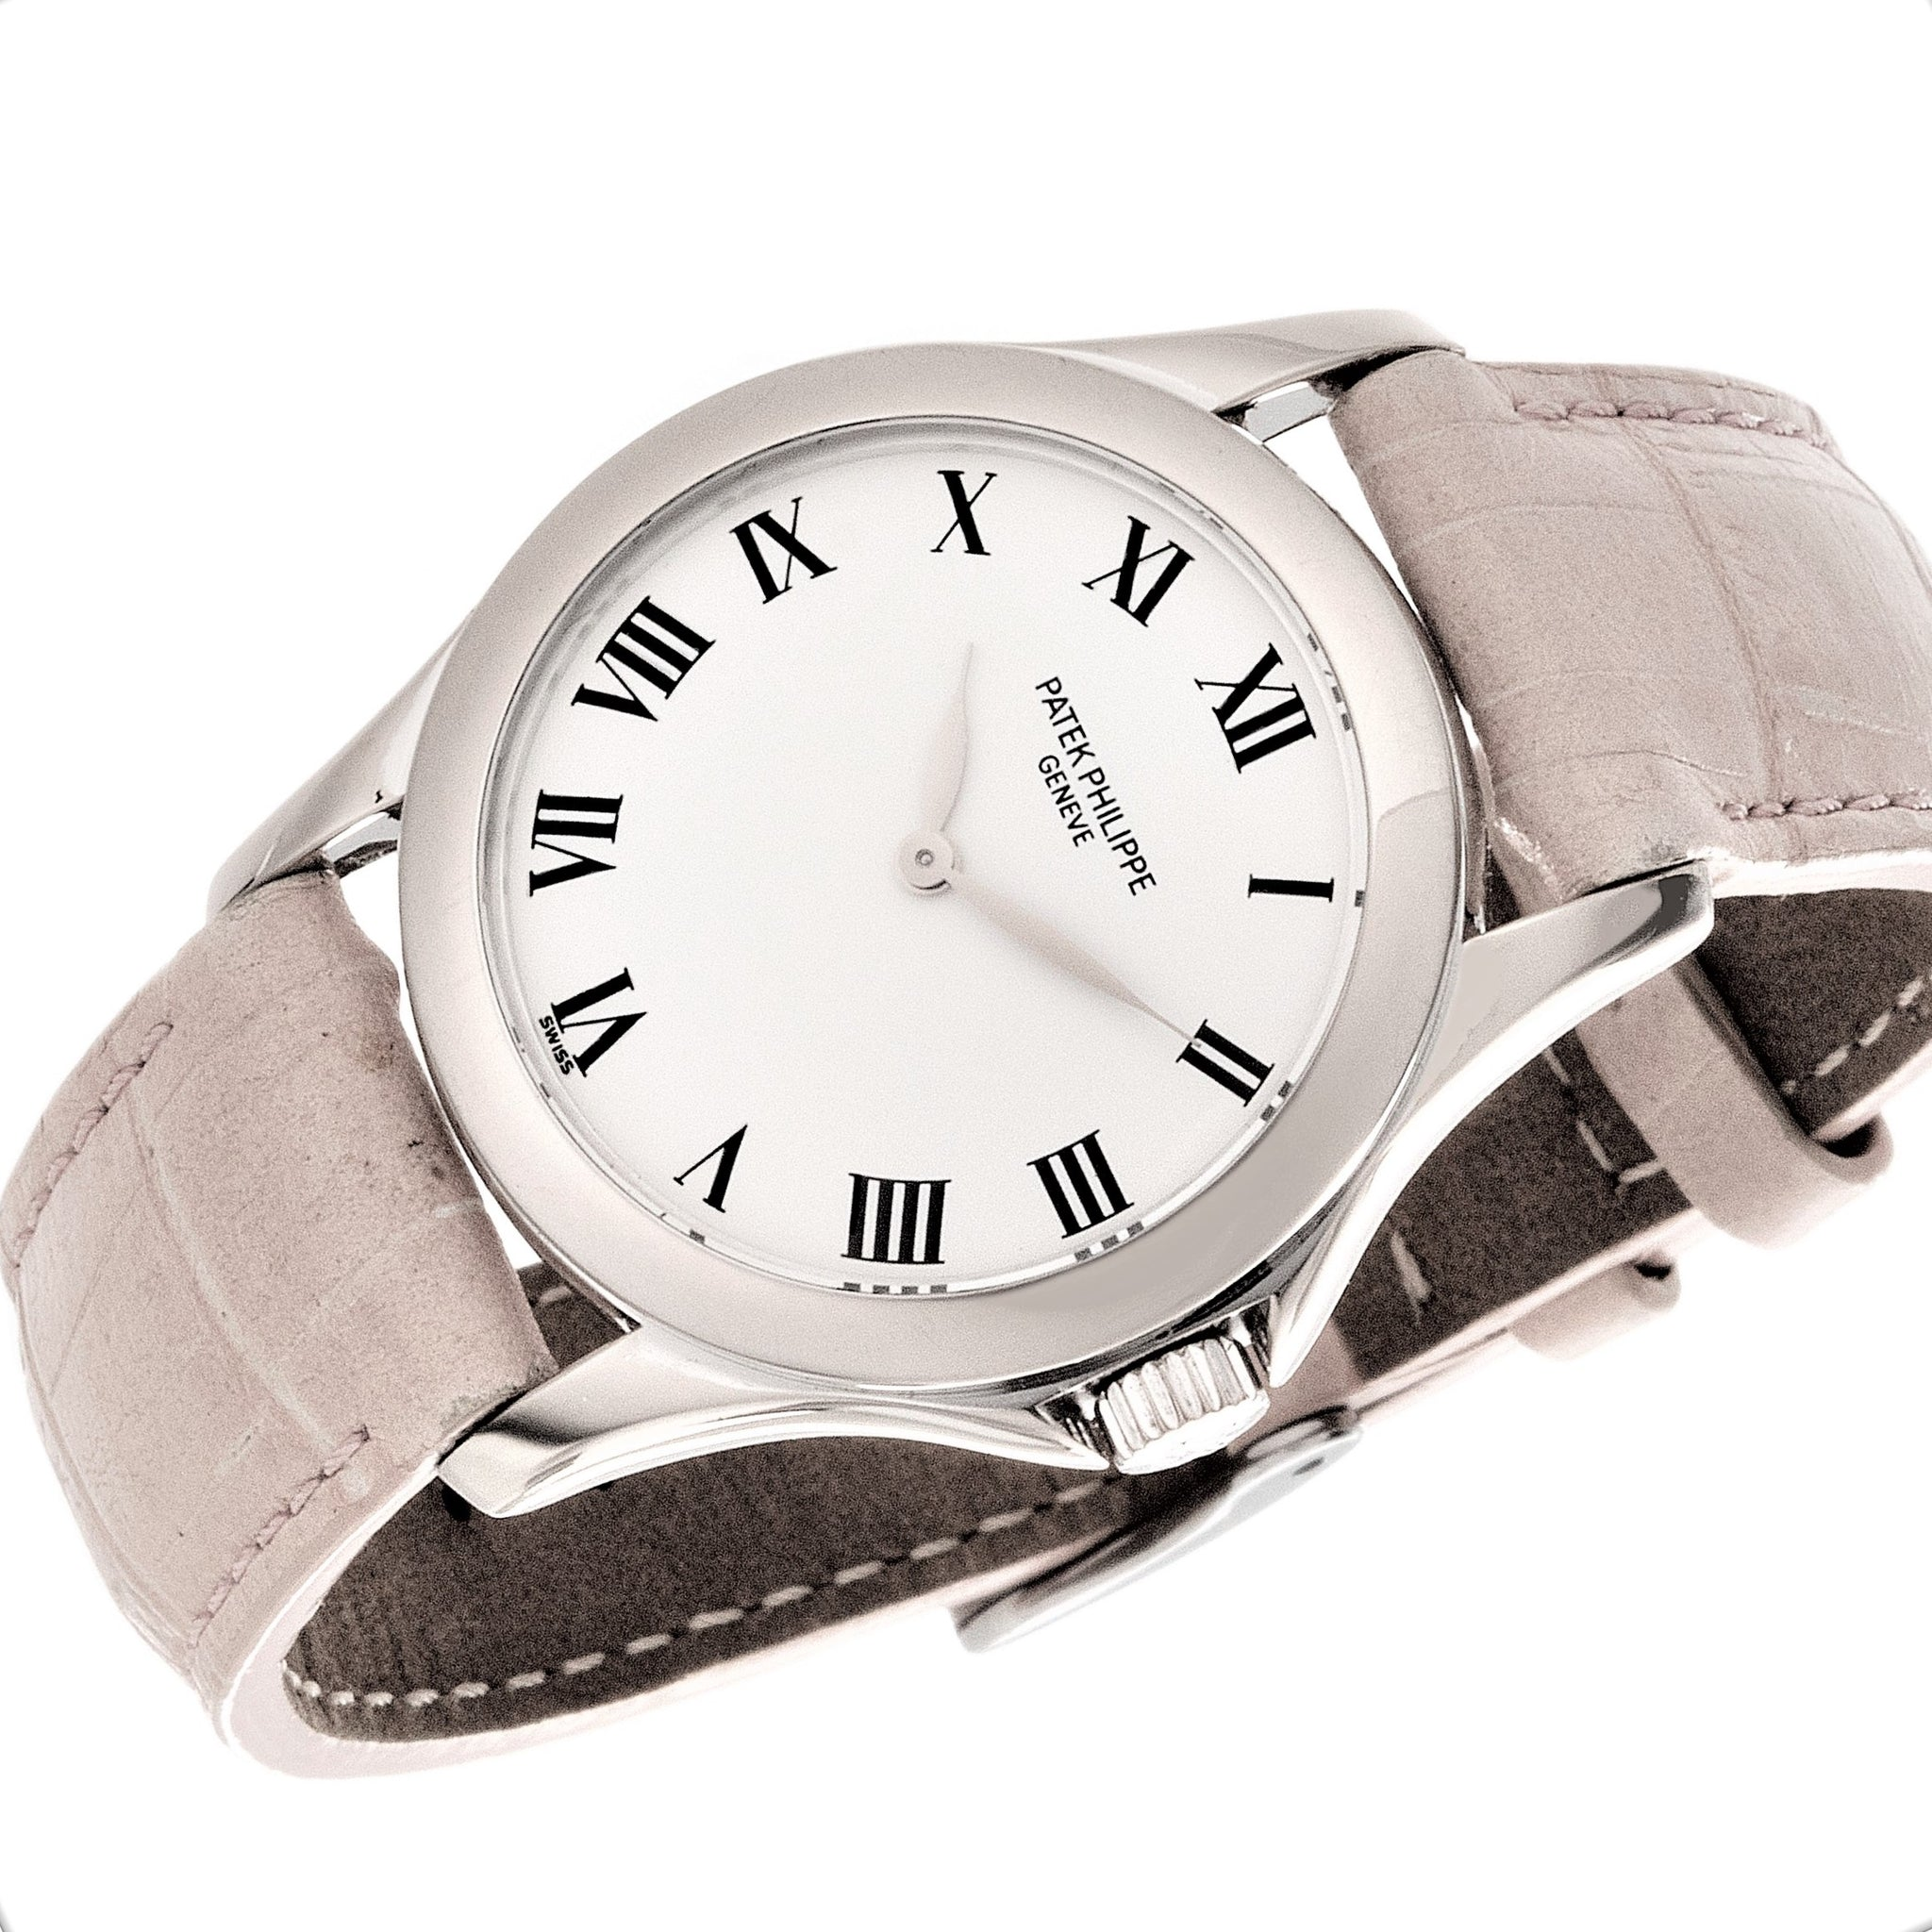 Patek Philippe 4905G Calatrava Watch